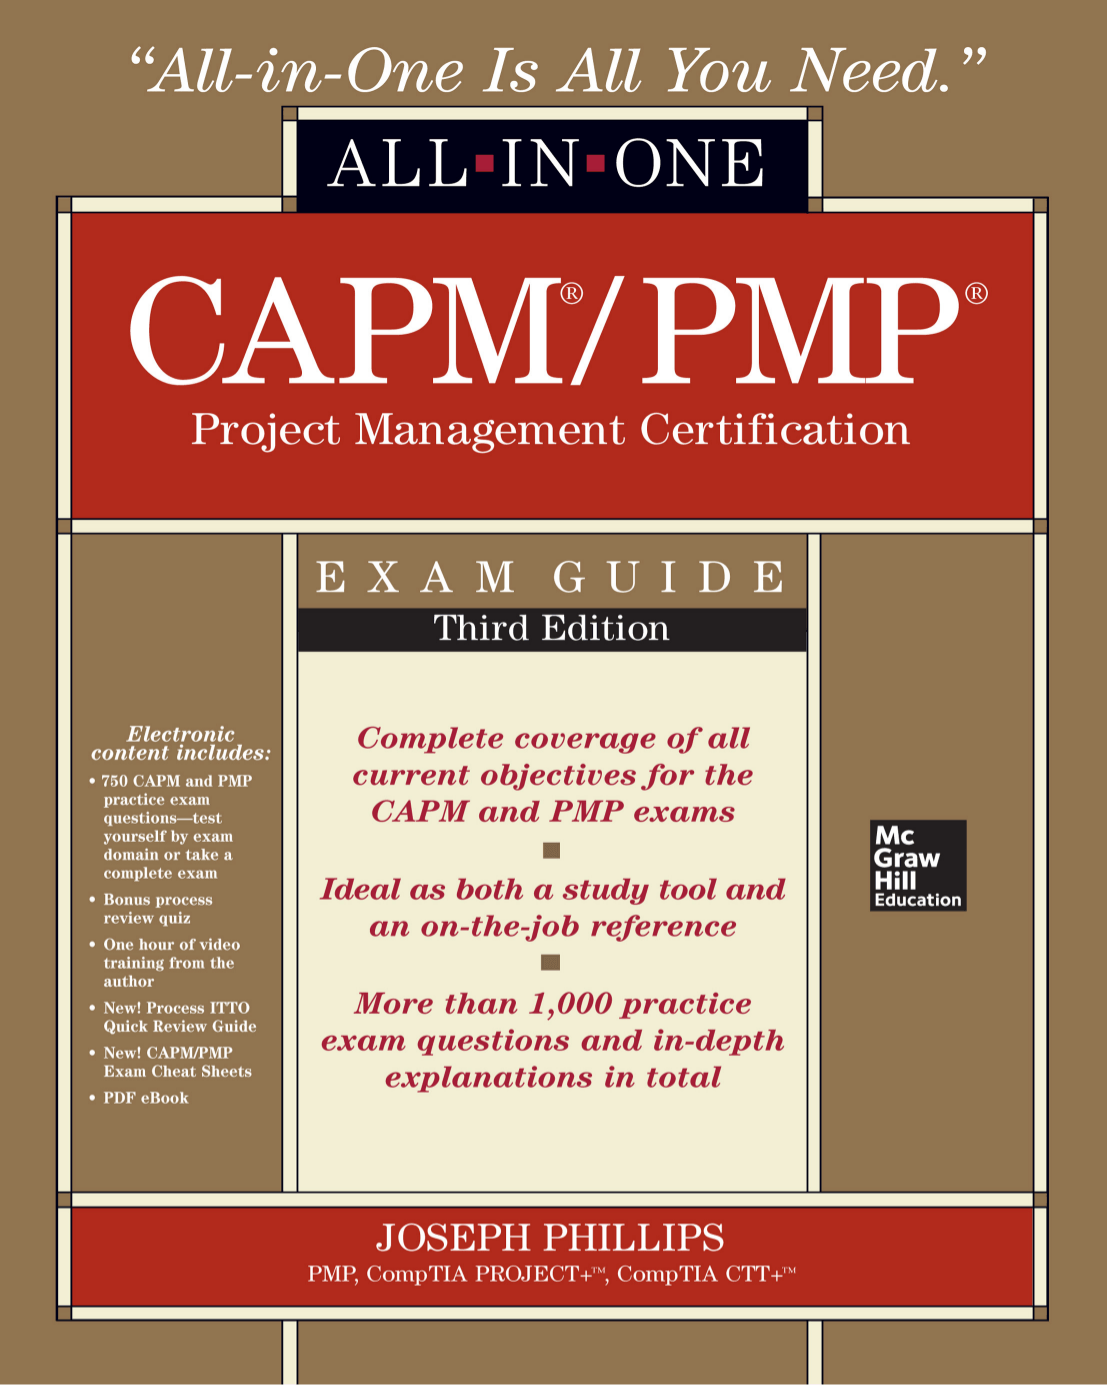 Eagle educational resources capmpmp project management certification all in one exam guide third edition fandeluxe Images